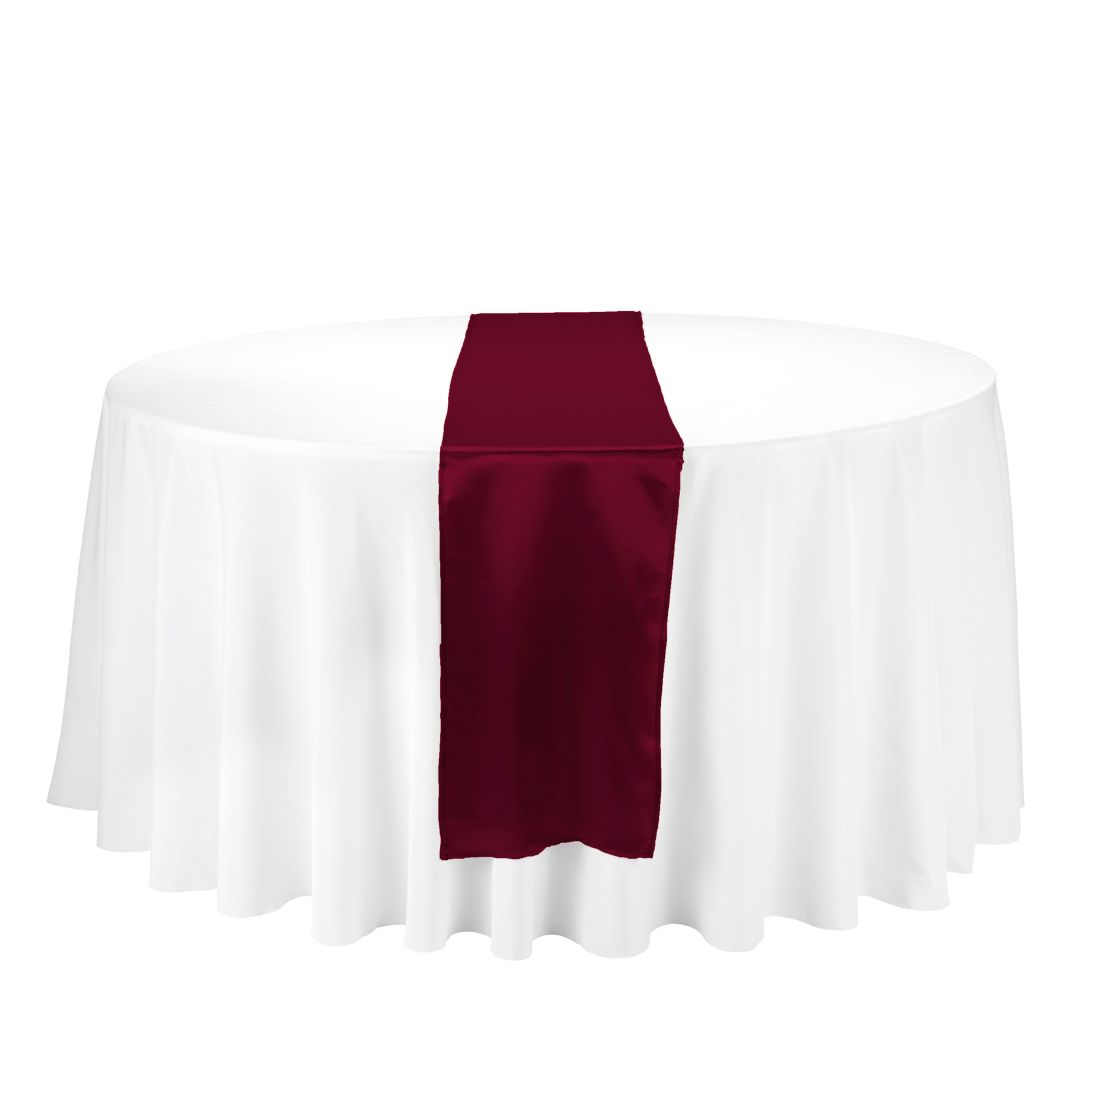 Nice Satin Table Runner Burgundy